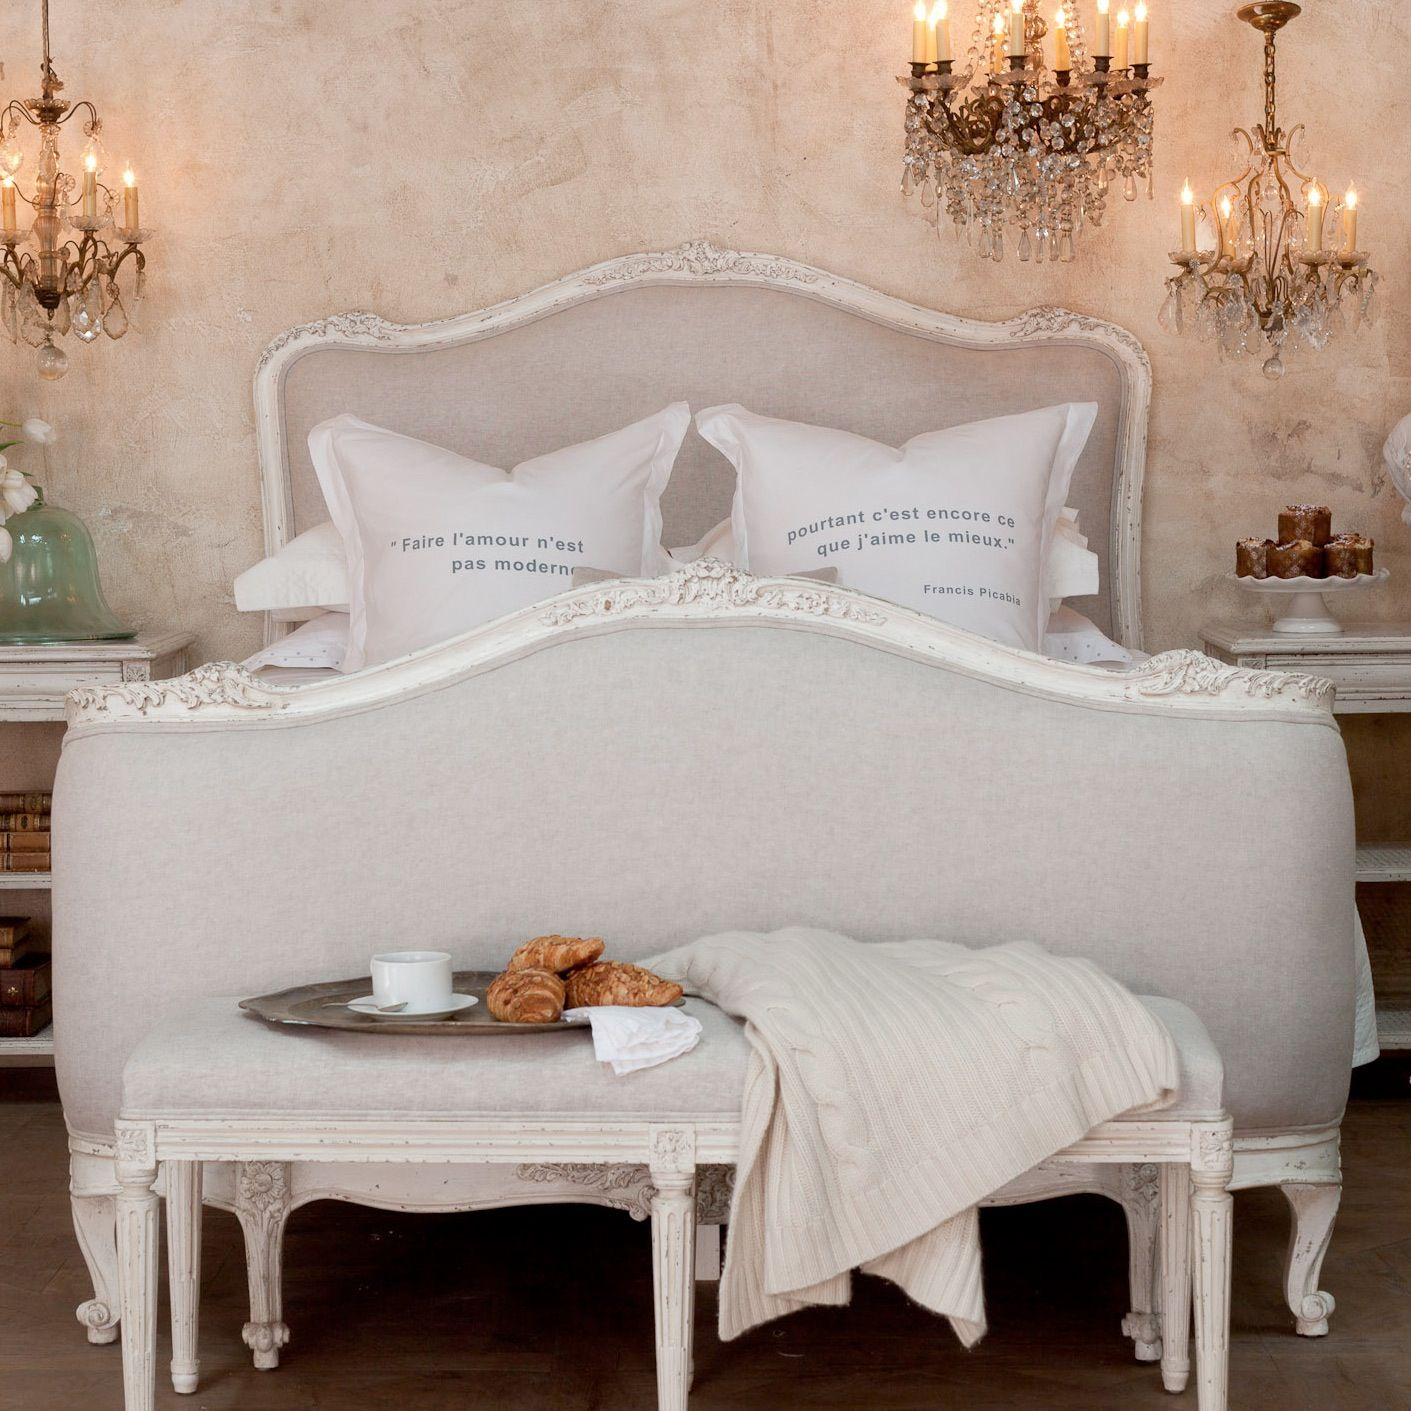 French Provincial bedroom French Provincial style